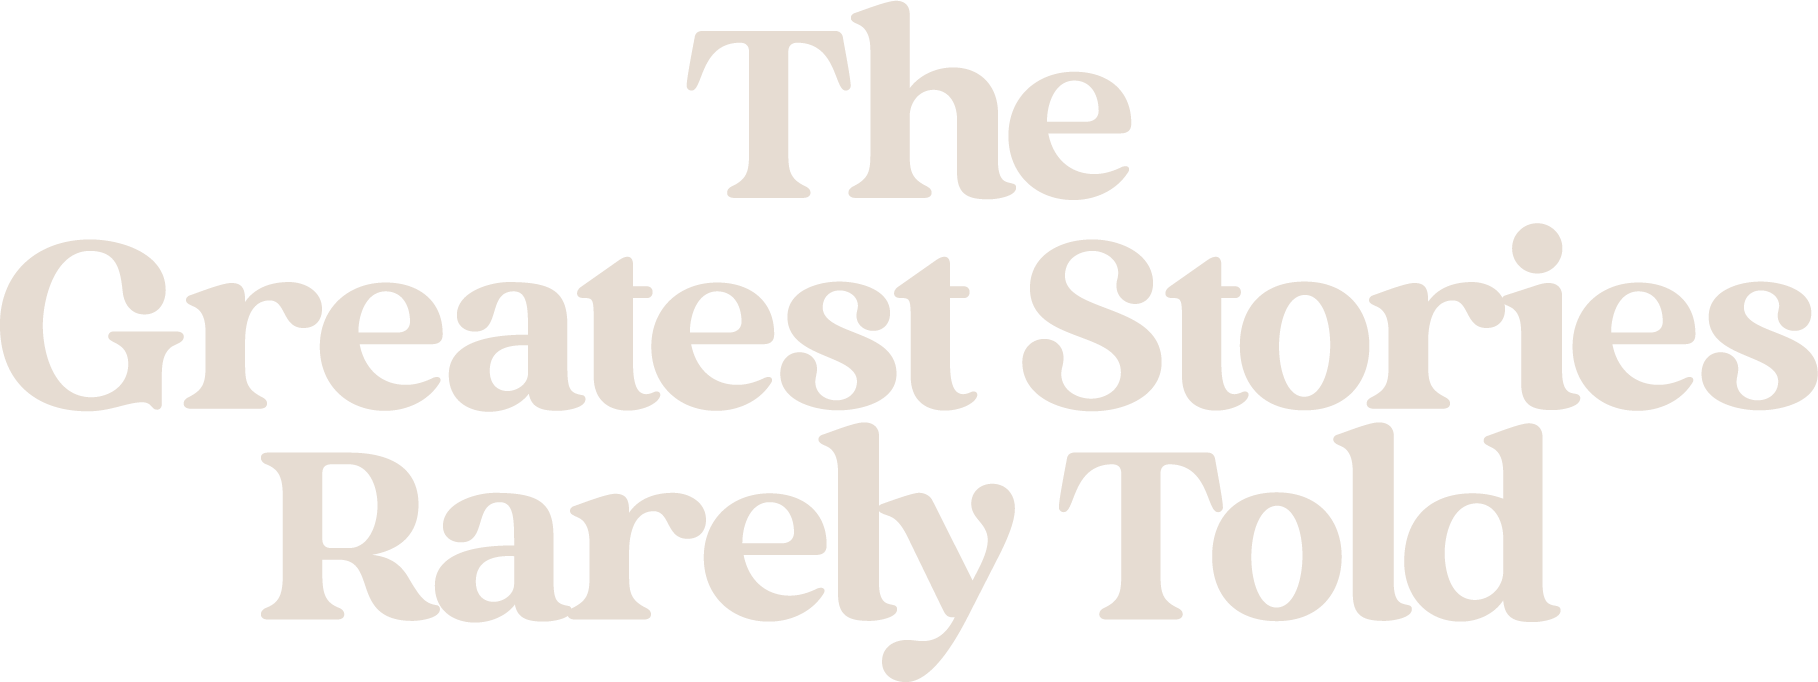 The Greatest Stories Rarely Told